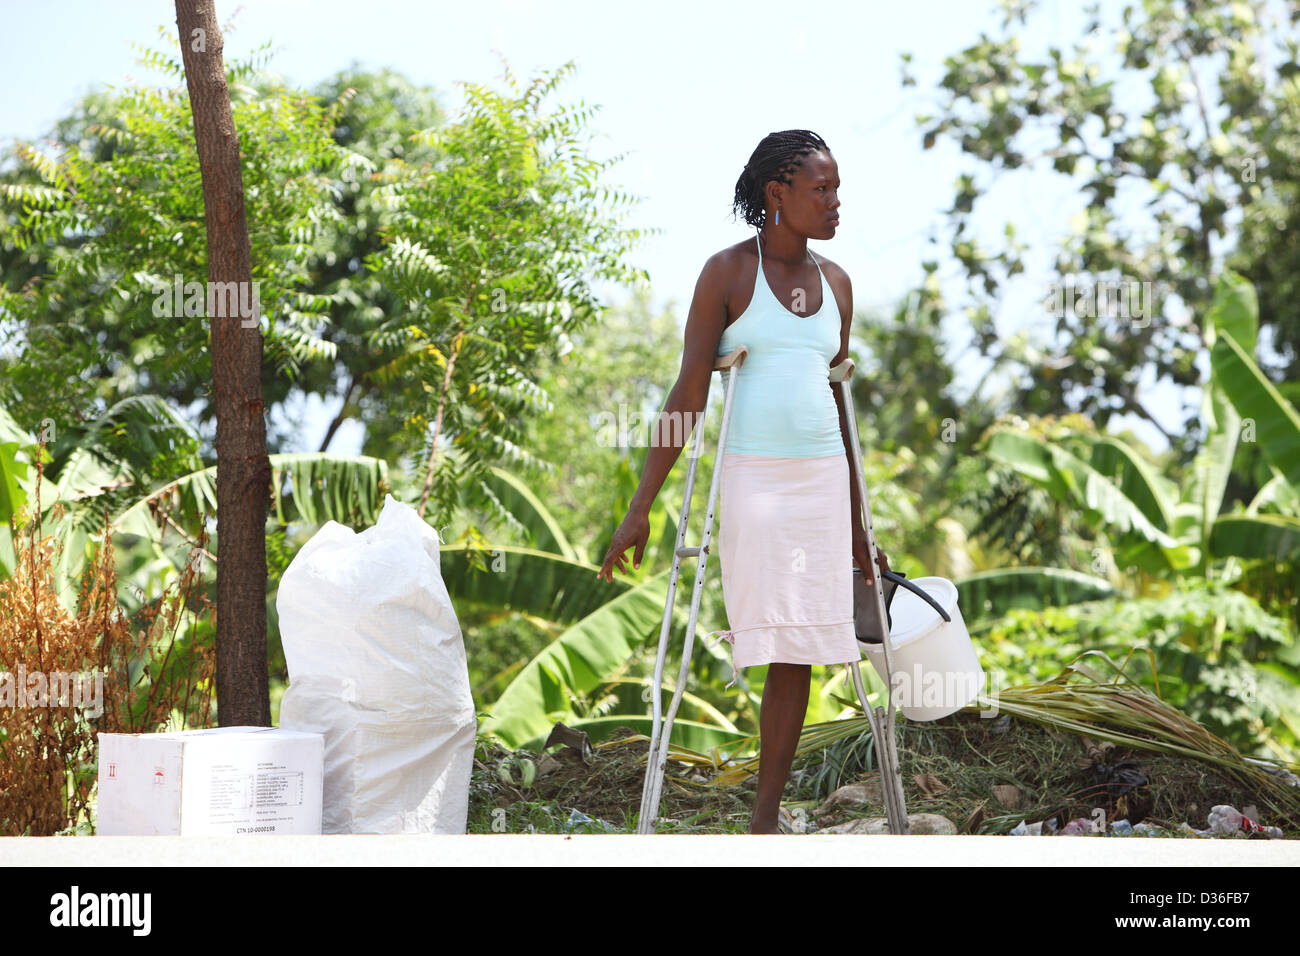 Leogane, Haiti, one leg amputee woman helps volunteers in the distribution of relief supplies - Stock Image